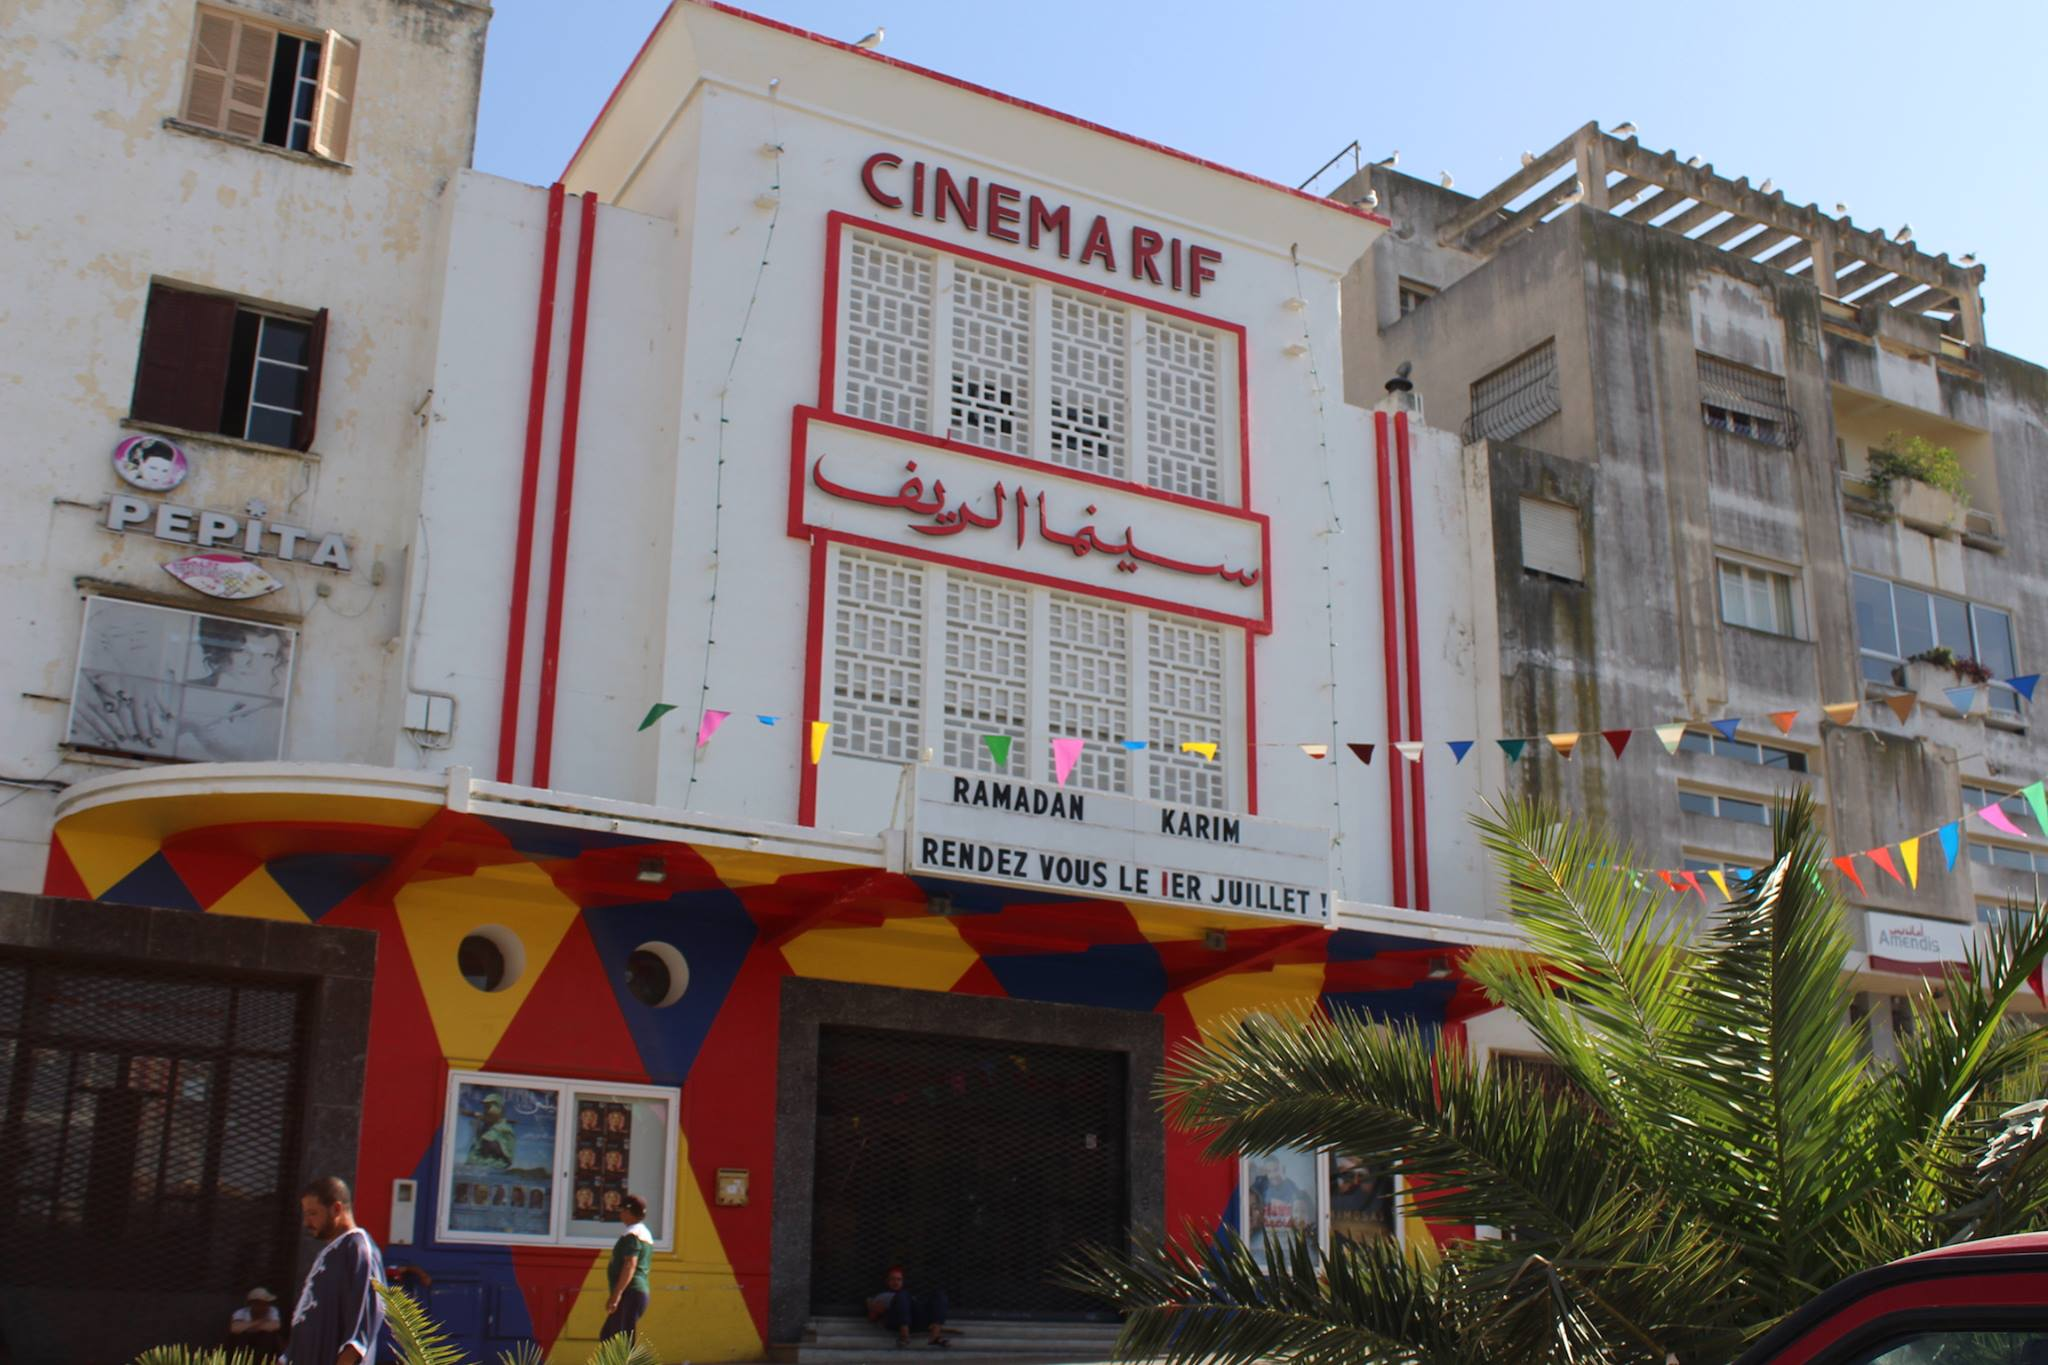 Cinema Rif Tangier